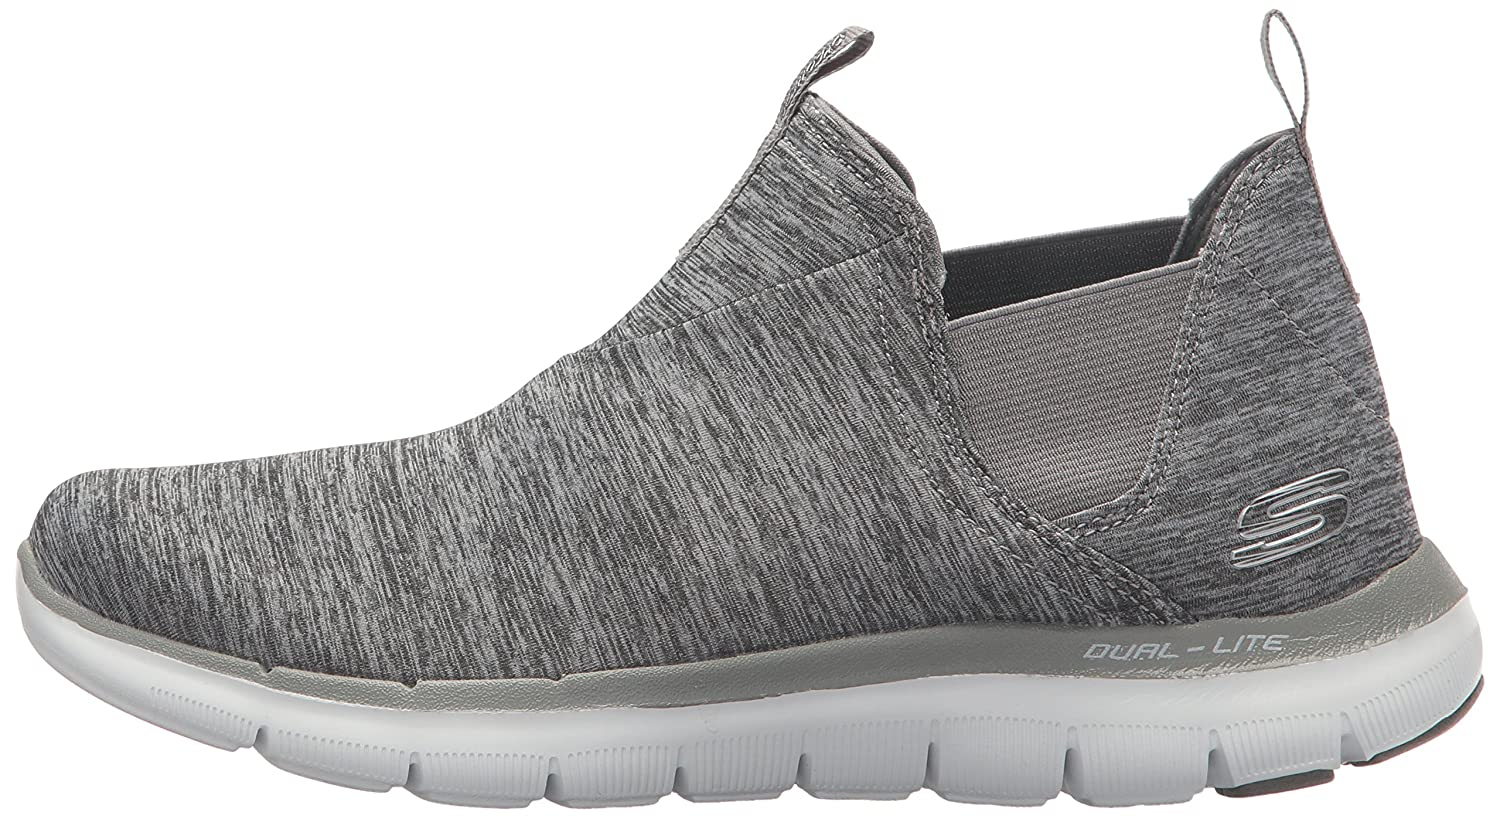 Skechers Women's Flex Appeal 2.0-High Card Sneaker B01N3V6EGS 8 B(M) US|Grey